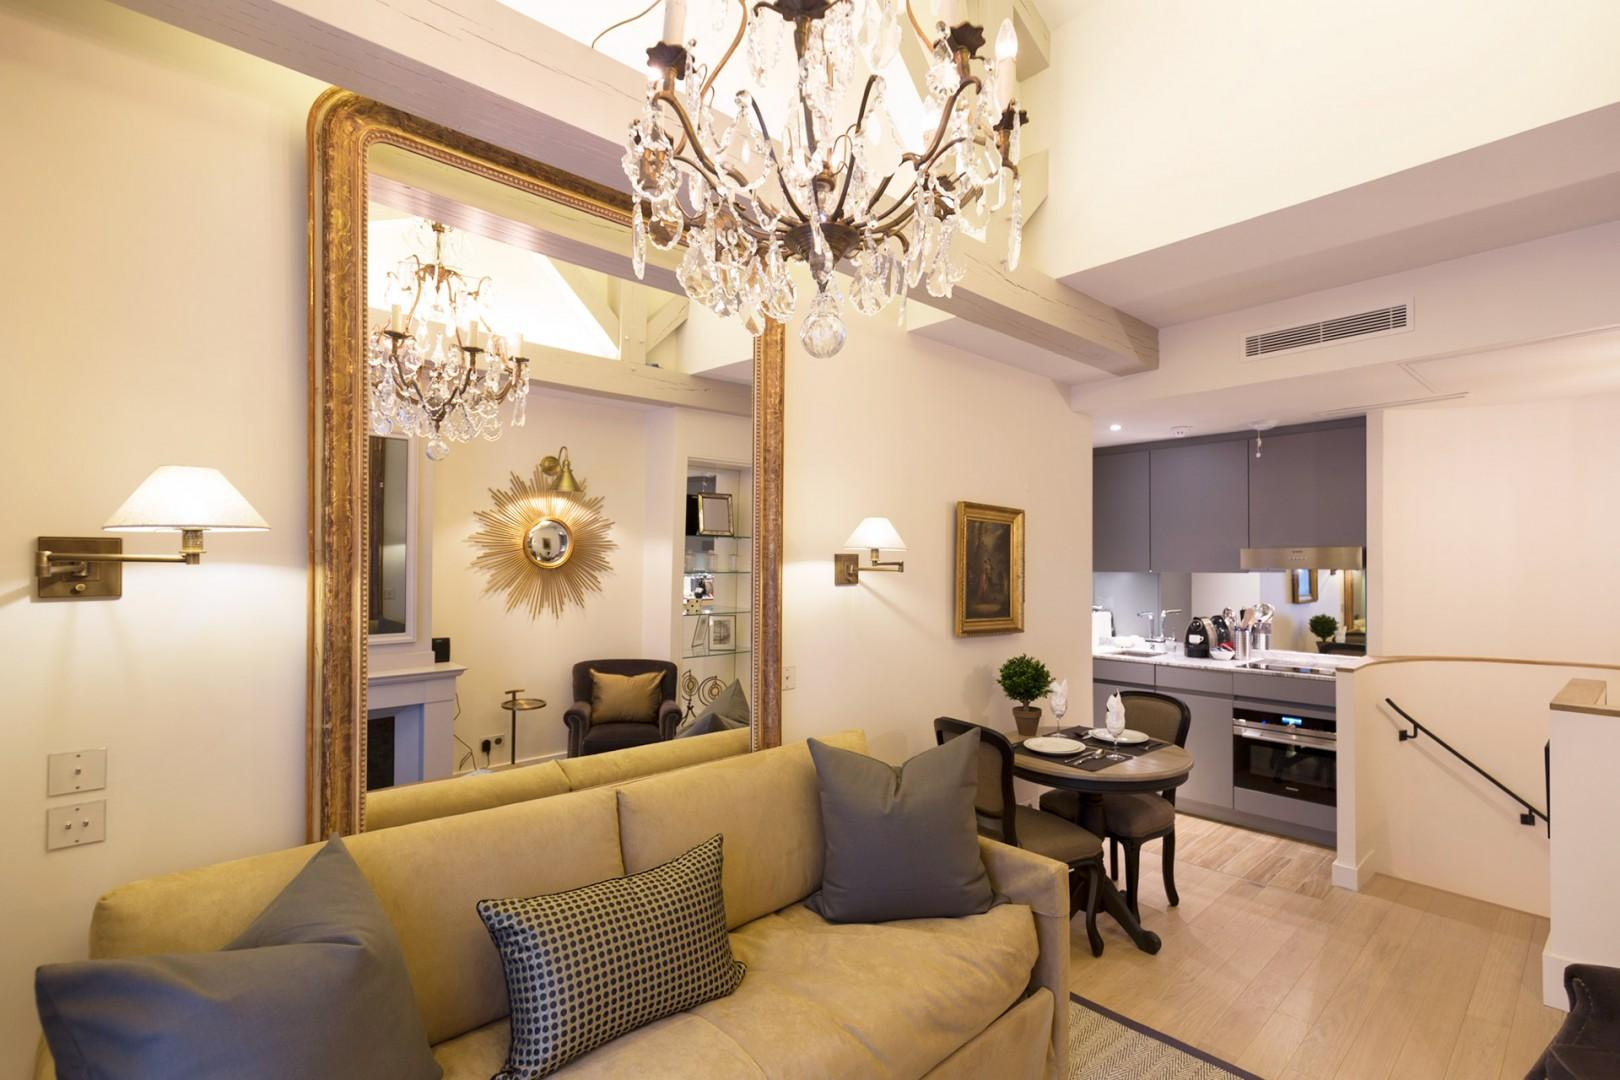 The open-plan living and dining area is great for entertaining.